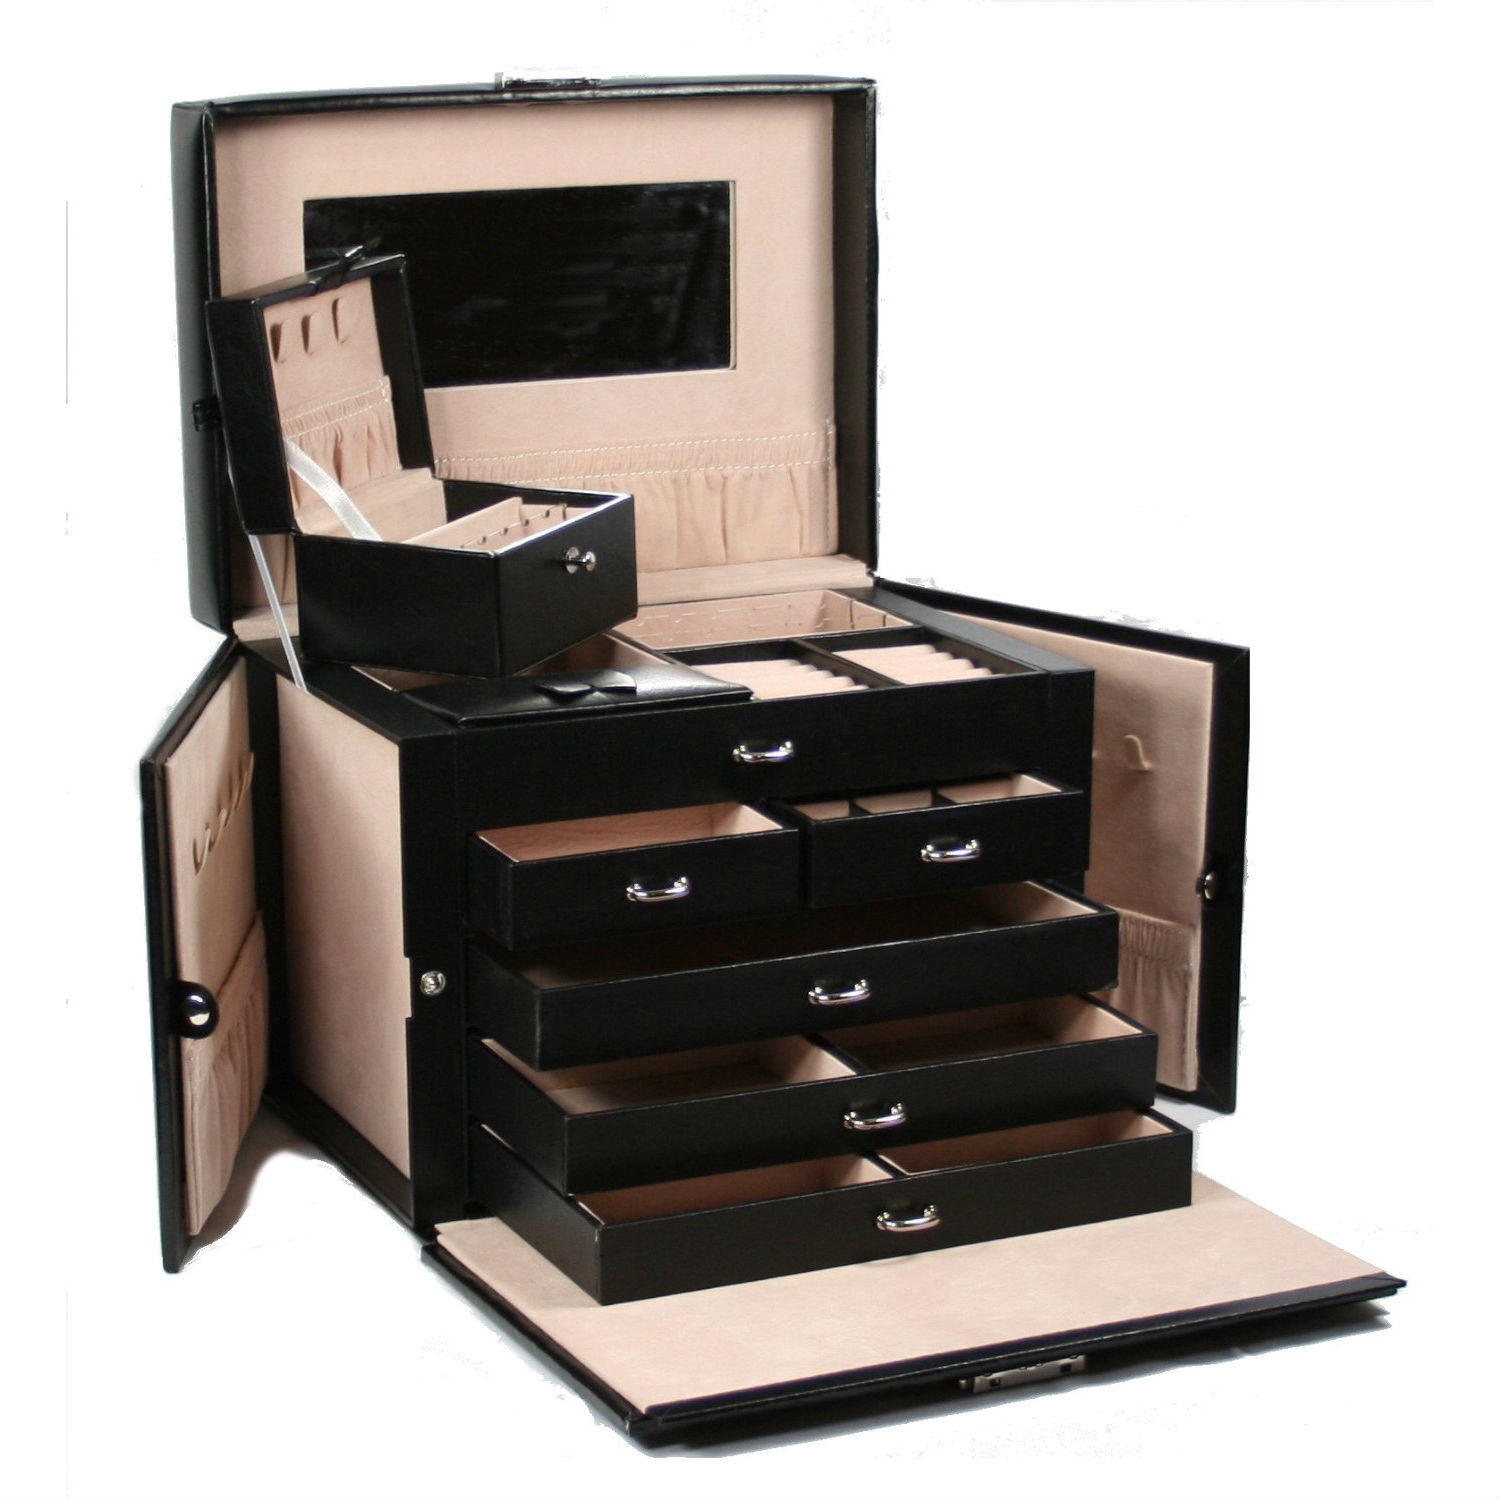 5-Drawer Black Leather Jewelry Box Travel Case with Key Lock, BLJB698413 :  Elegance par excellence. Hand-crafted of the finest sleekest black leather, innovative in design, delicious tone, this 5-Drawer Black Leather Jewelry Box Travel Case with Key Lock features convenient compartments, unique fold out panel design for hanging necklaces and bracelets, adorable mini travel case, gleaming gold-plated clasps, and large capacity to hold even the largest jewelry collections, Showcase your collection in glamor and style in this timeless jewelry case. This large beautiful leather jewelry box features 4 separate sections (see picture). It can be easily closed with a snap (see picture) and secured with a lock. Inside lining is in light pink. 20 compartments; 10 necklace hooks; 3 large storage pouches;Lined in silsuede and finished in oiled leather and durable synthahide; 2 removable earring holders which hold up to 30 earrings (10 hanging, 20 posts); Twin fold out side compartments with snap closures; Lock with a key; Large mirror on top lid.